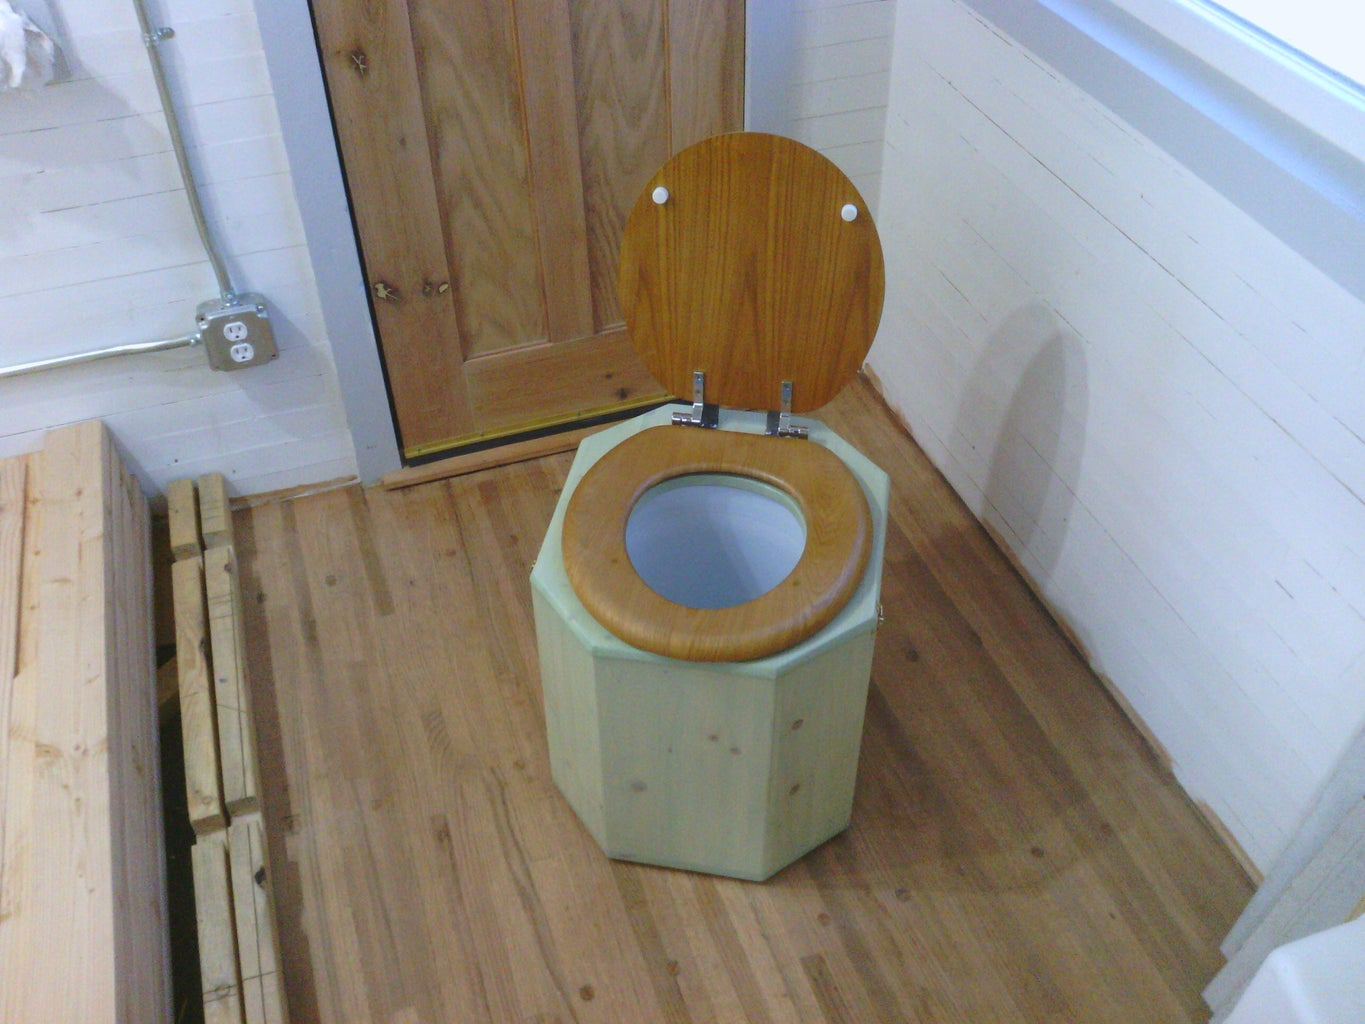 Staining and Varnishing the Toilet, and the Finished Product!